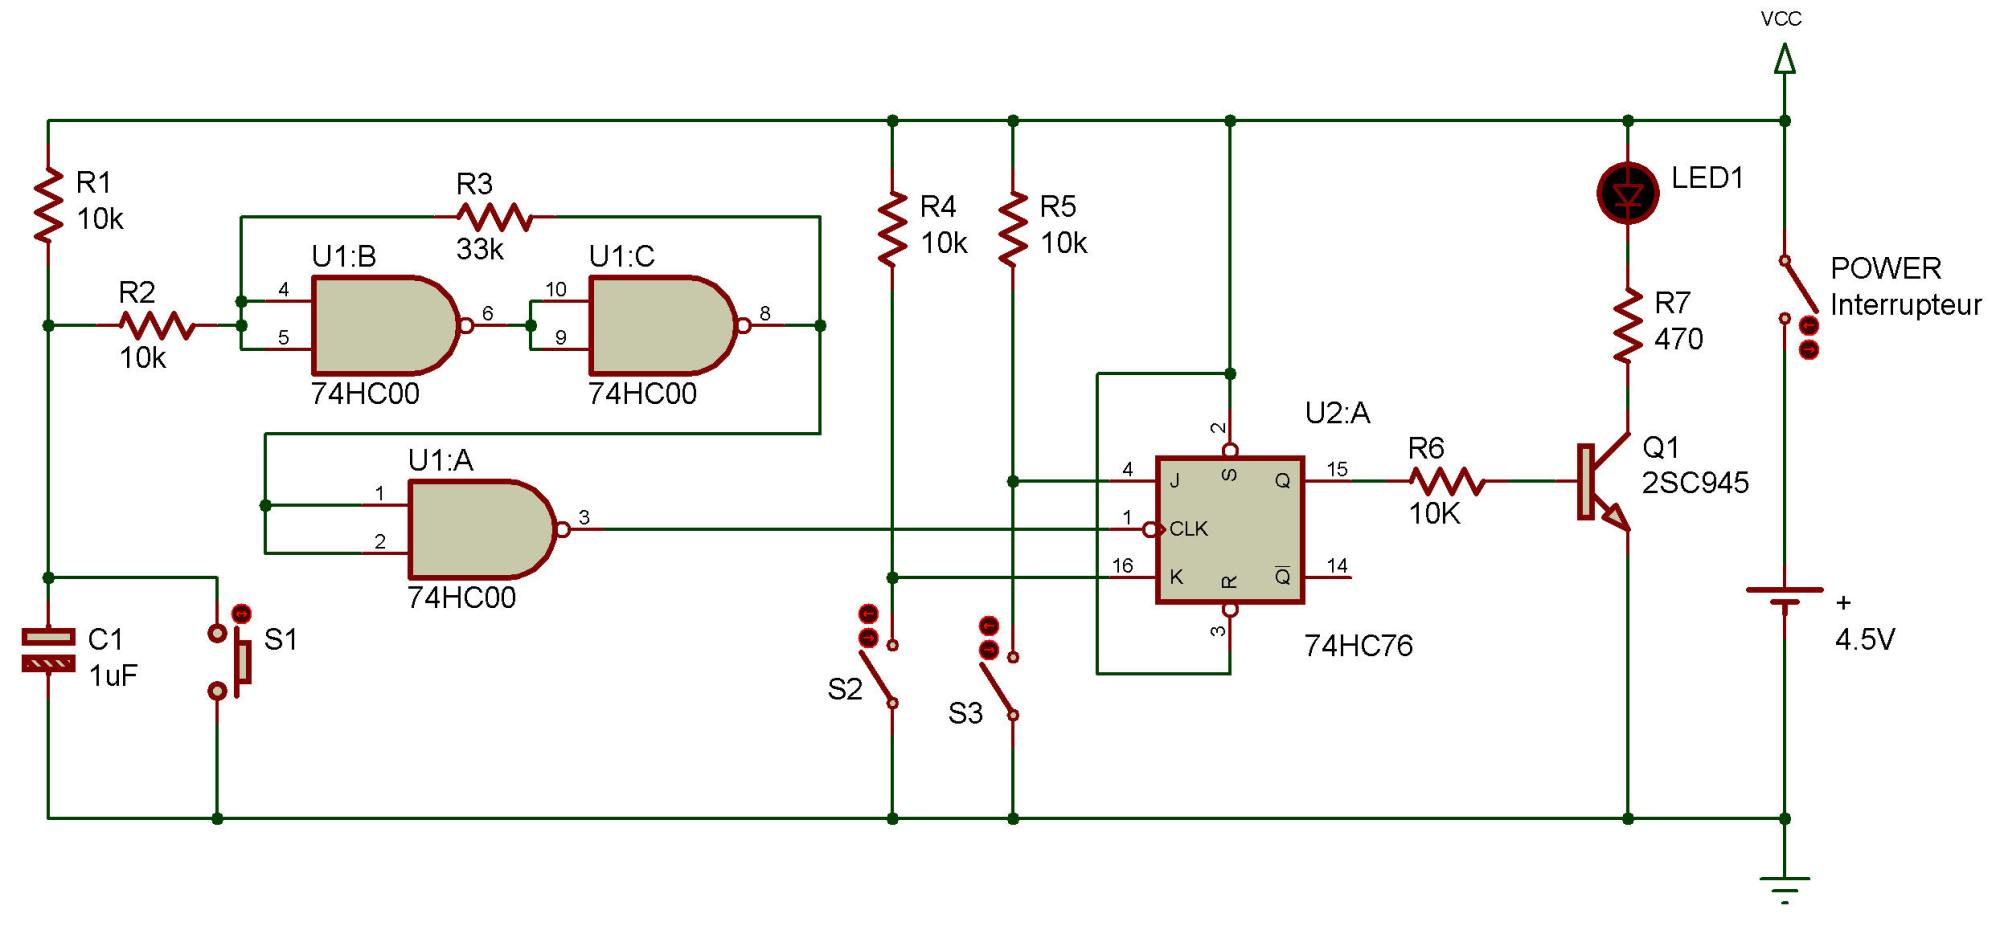 hight resolution of in project transistorized toggle flip flop you saw how a flip flop circuit can be toggled so that we can have additional control over it